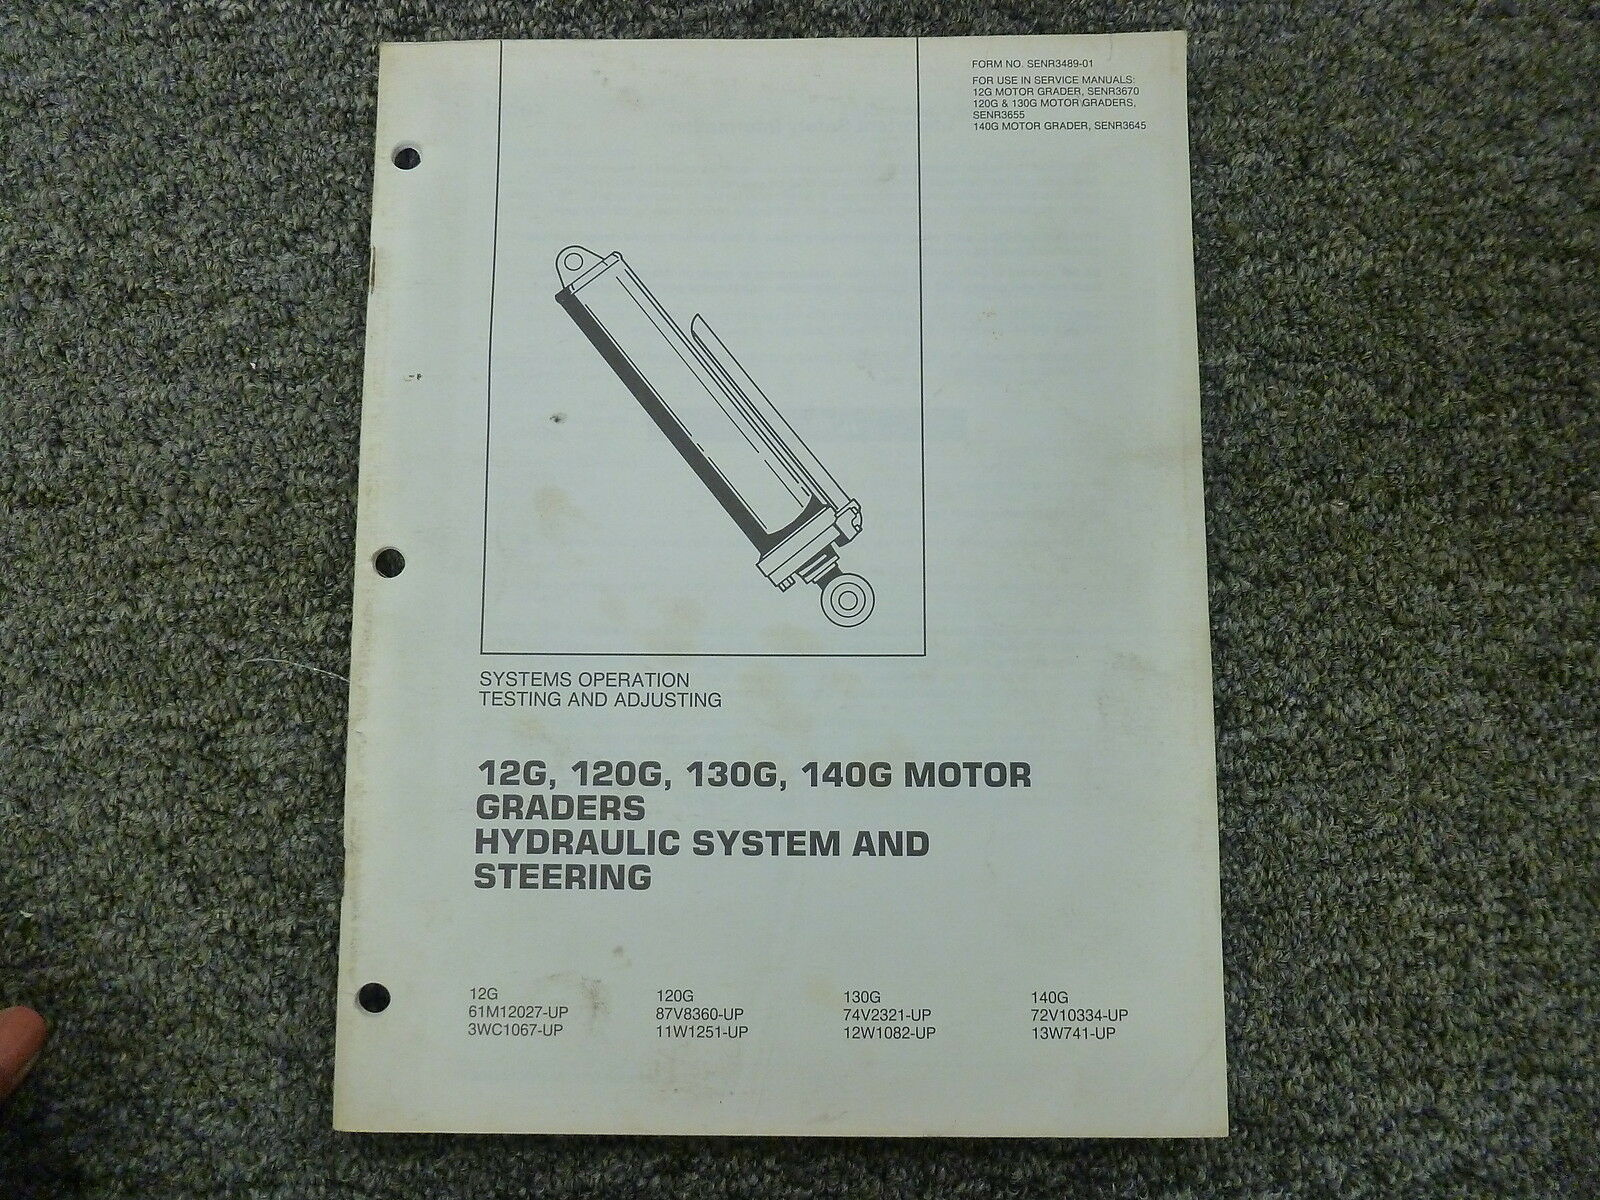 Caterpillar Cat 12G 120G 130G 140G Grader Test & Adjusting Service Repair  Manual 1 of 1Only 1 available ...